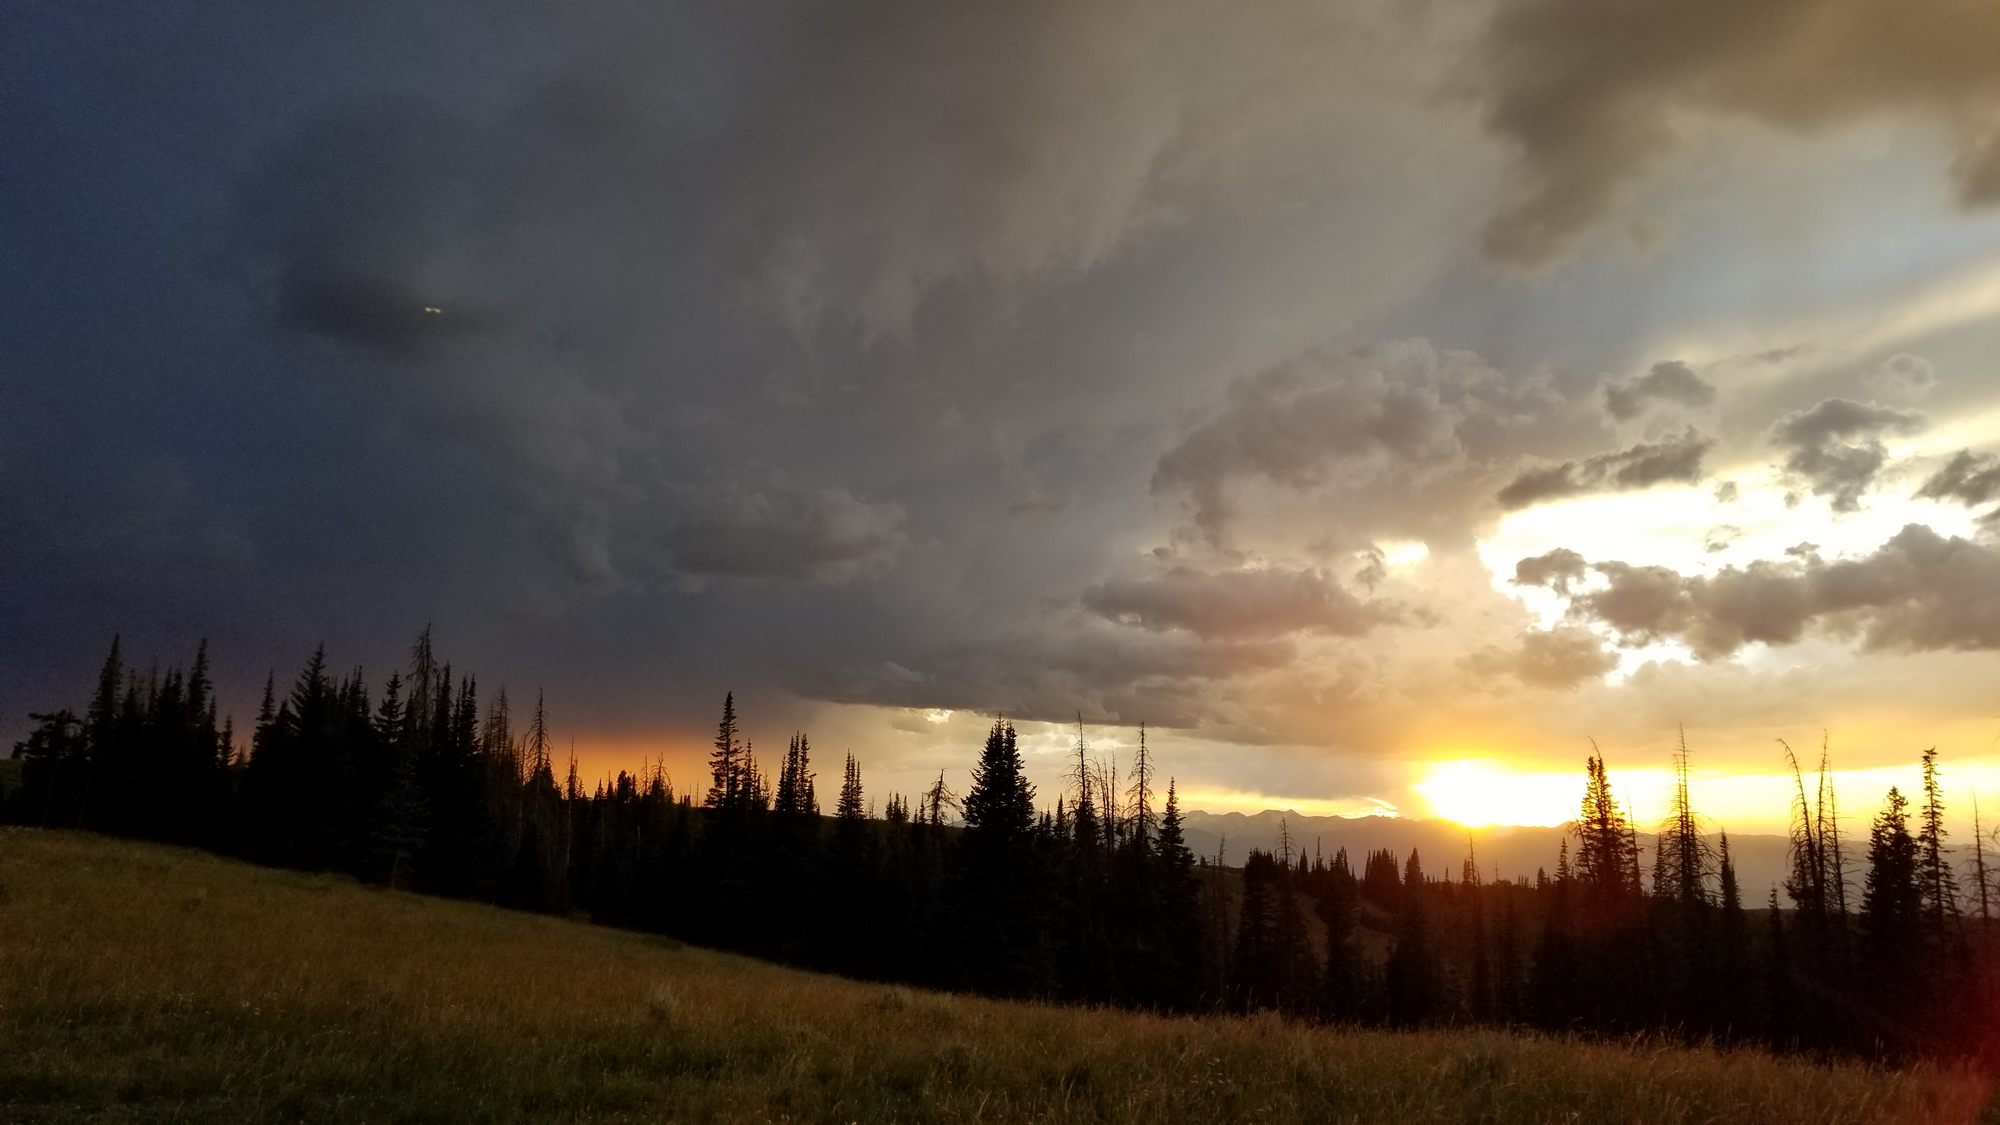 A sunset thunderstorm rolls into camp